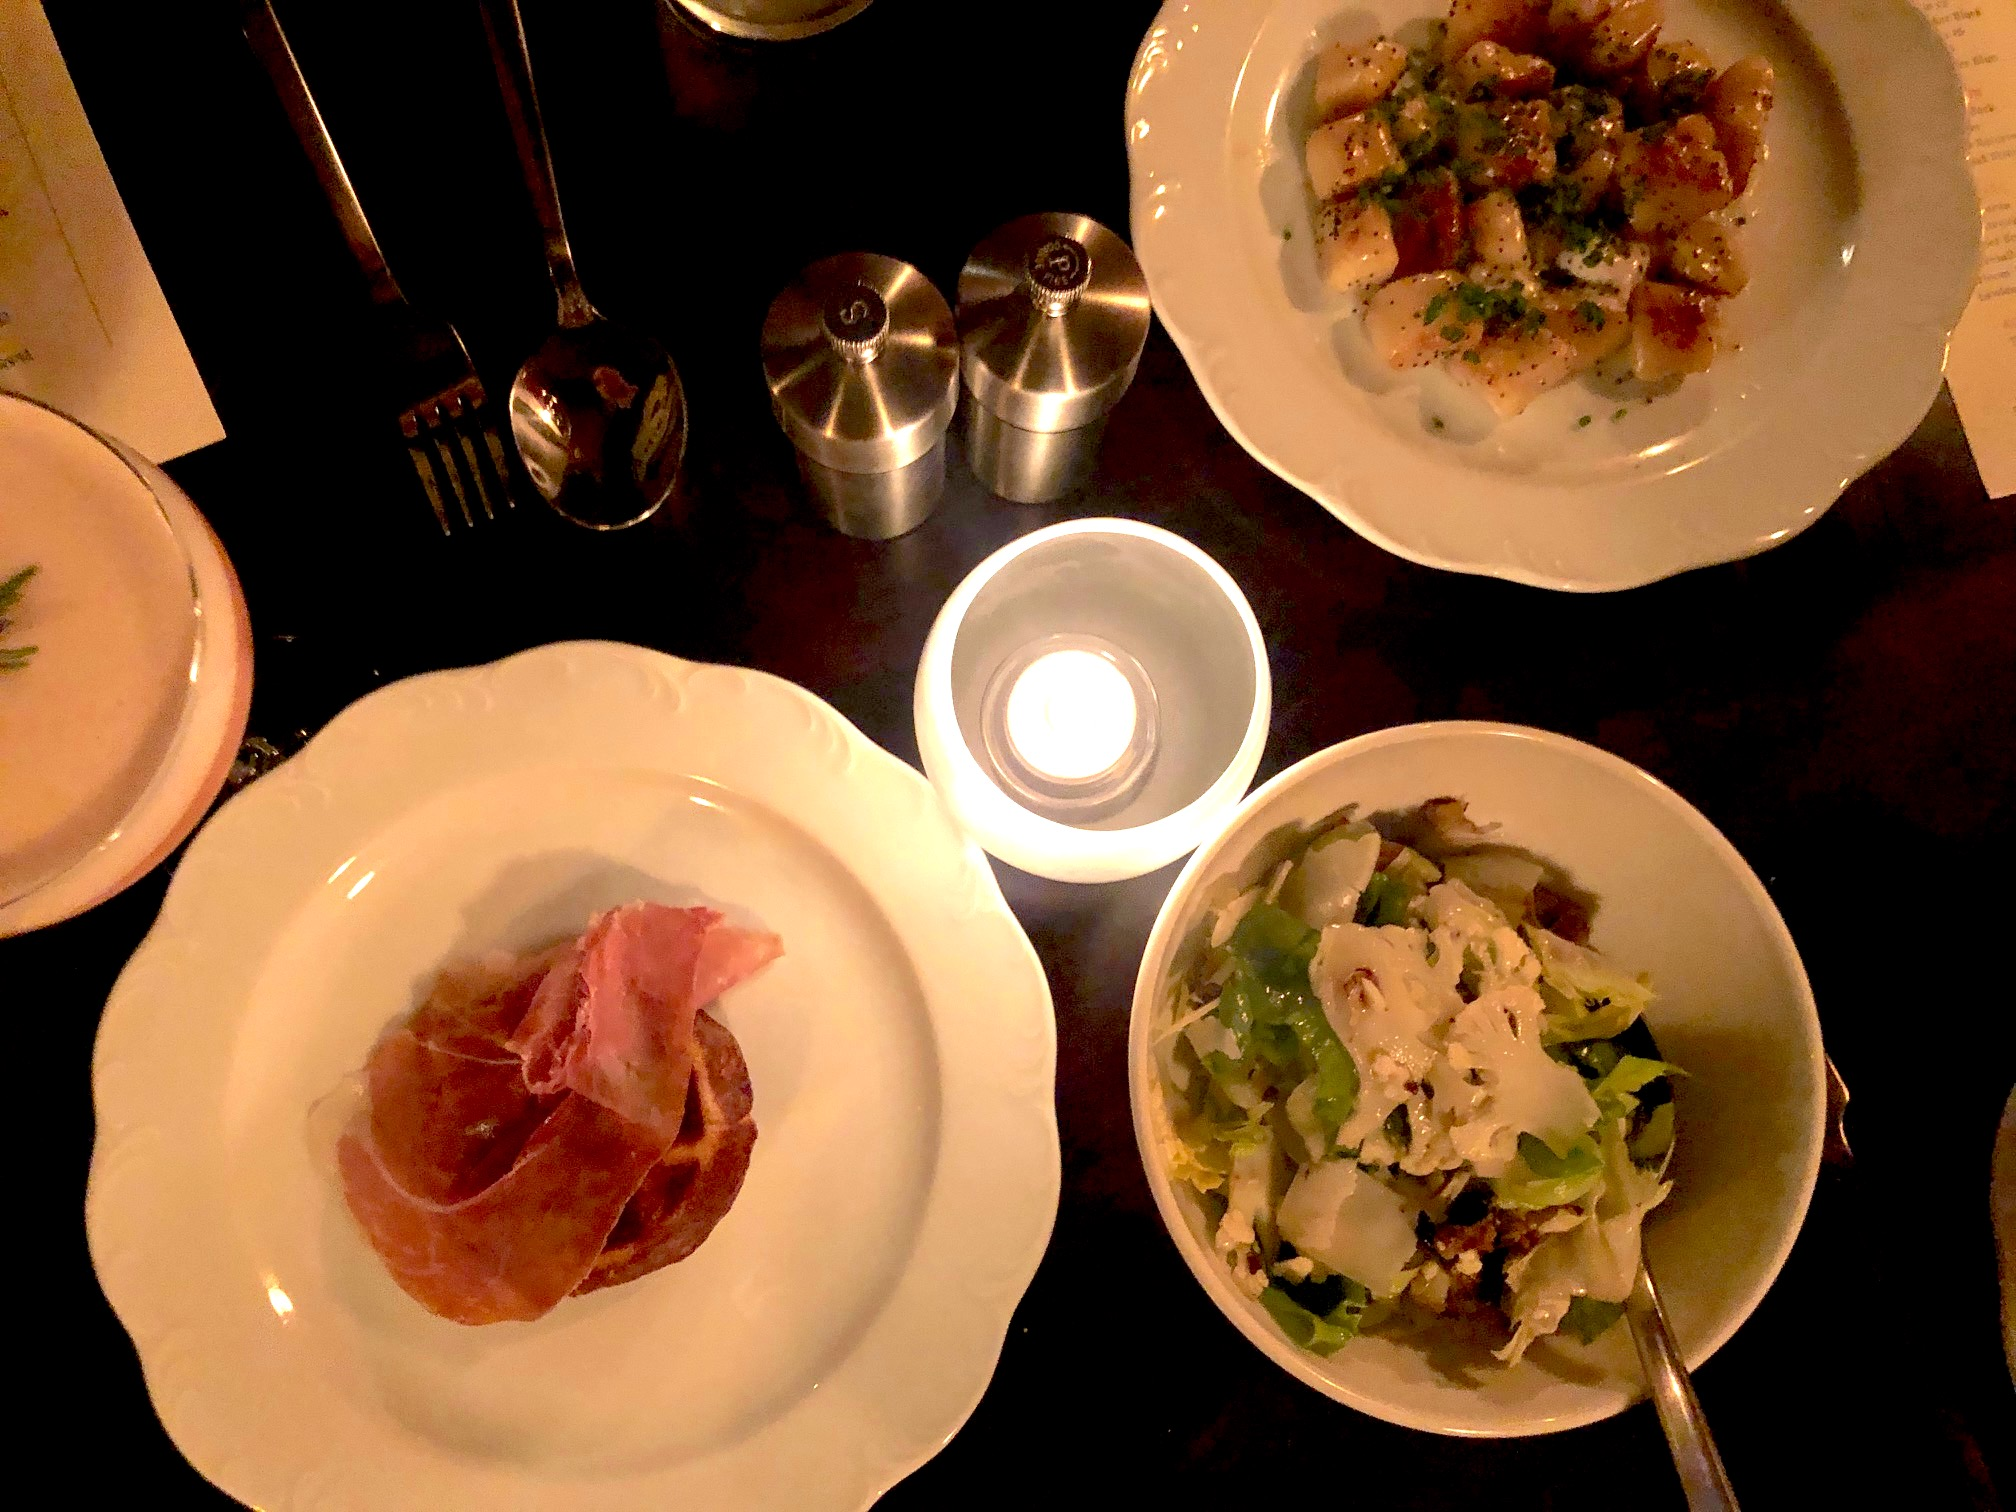 At Snack Bar, guests are encouraged to assemble a collection of small plates. Clockwise from top: Sweet Potato Gnocchi & Stracchino Cheese; Pickled Cauliflower Salad; and the Parmesan Waffle with Prosciutto di Parma